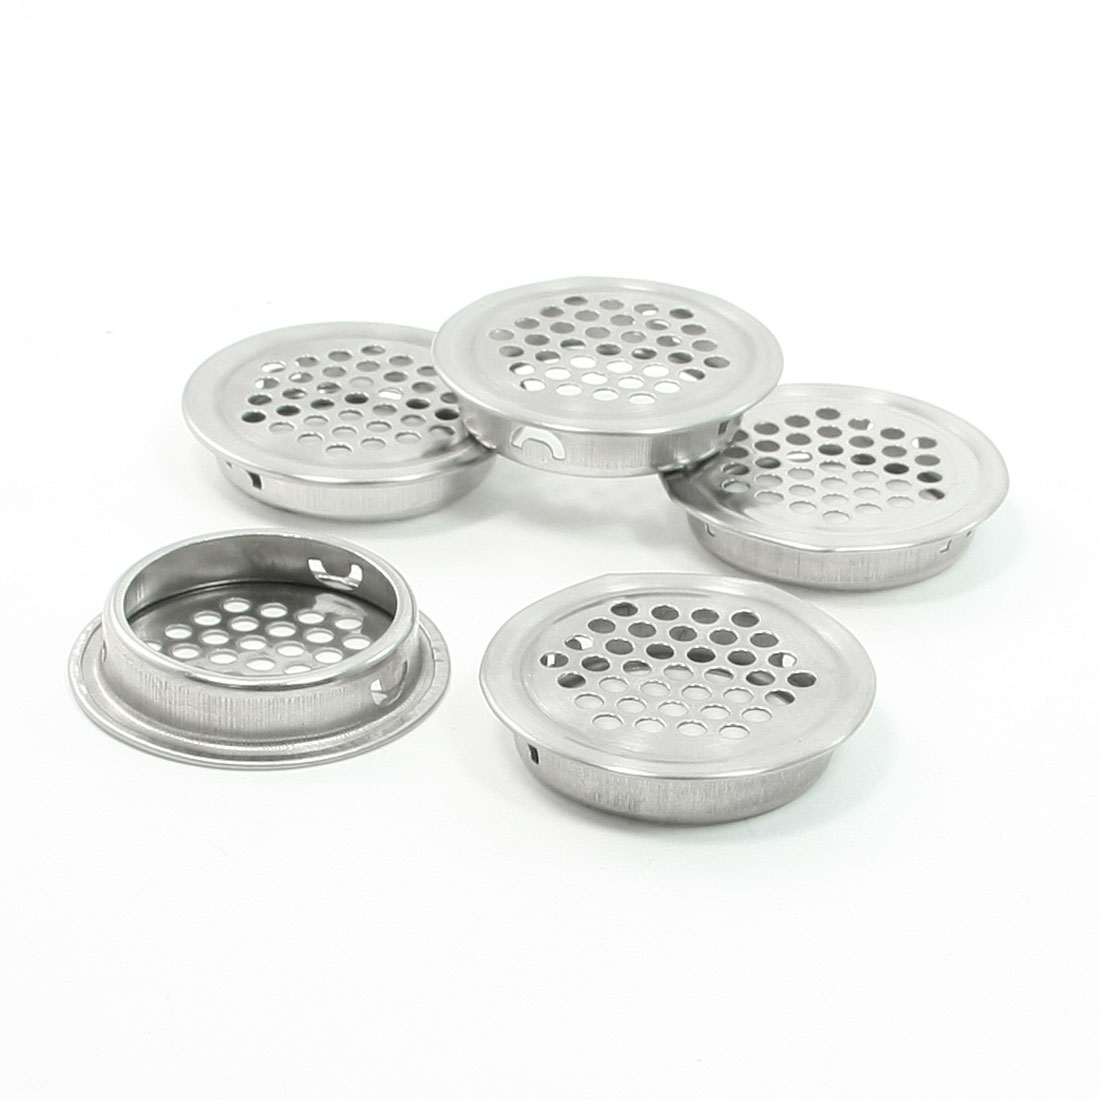 Mesh Holes 35mm Botton Dia Metallic Round Design Air Vent for Auditorium 5 Pcs